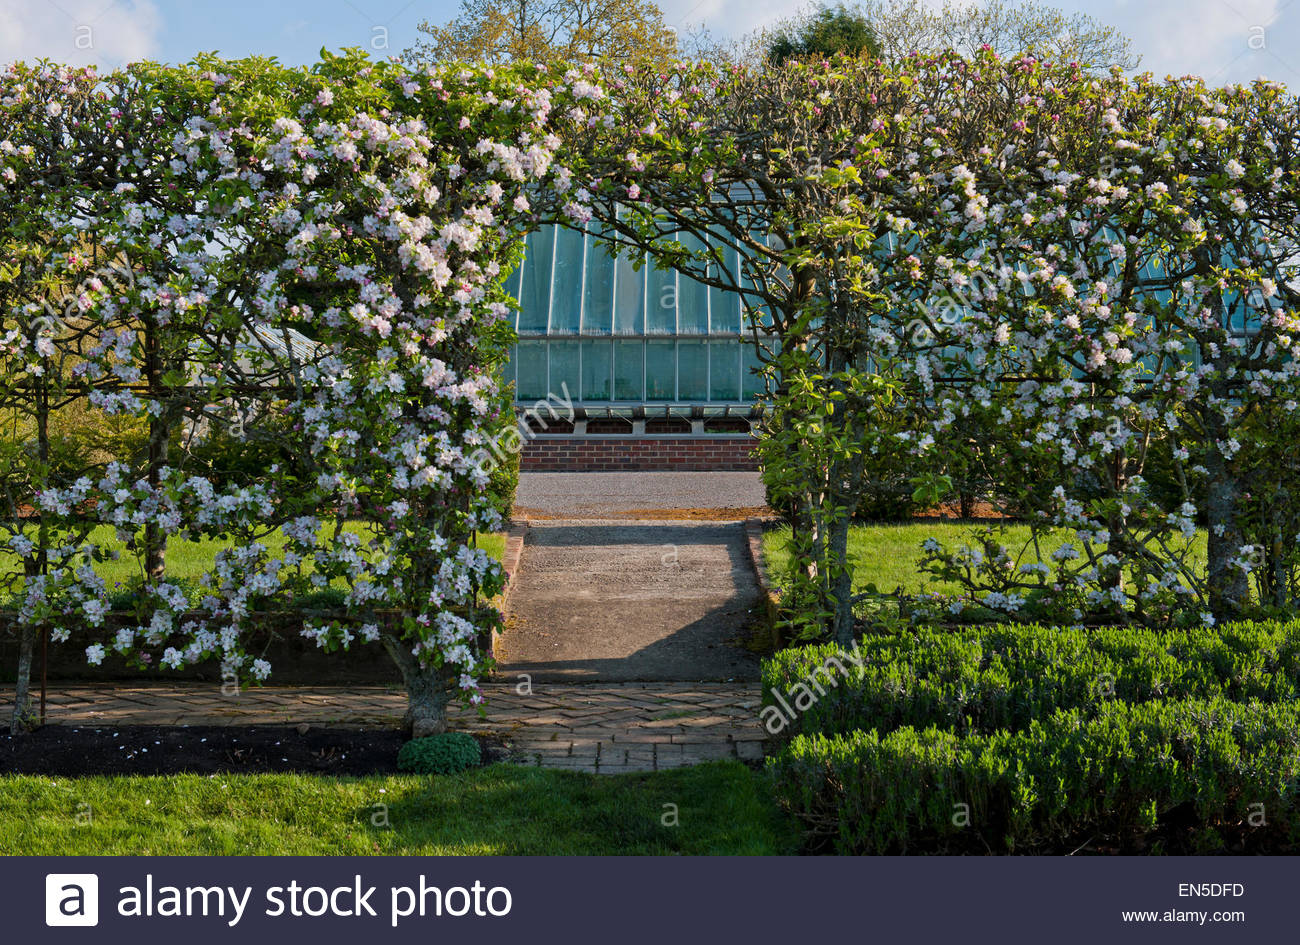 Malus domestica Apple tunnel - Stock Image